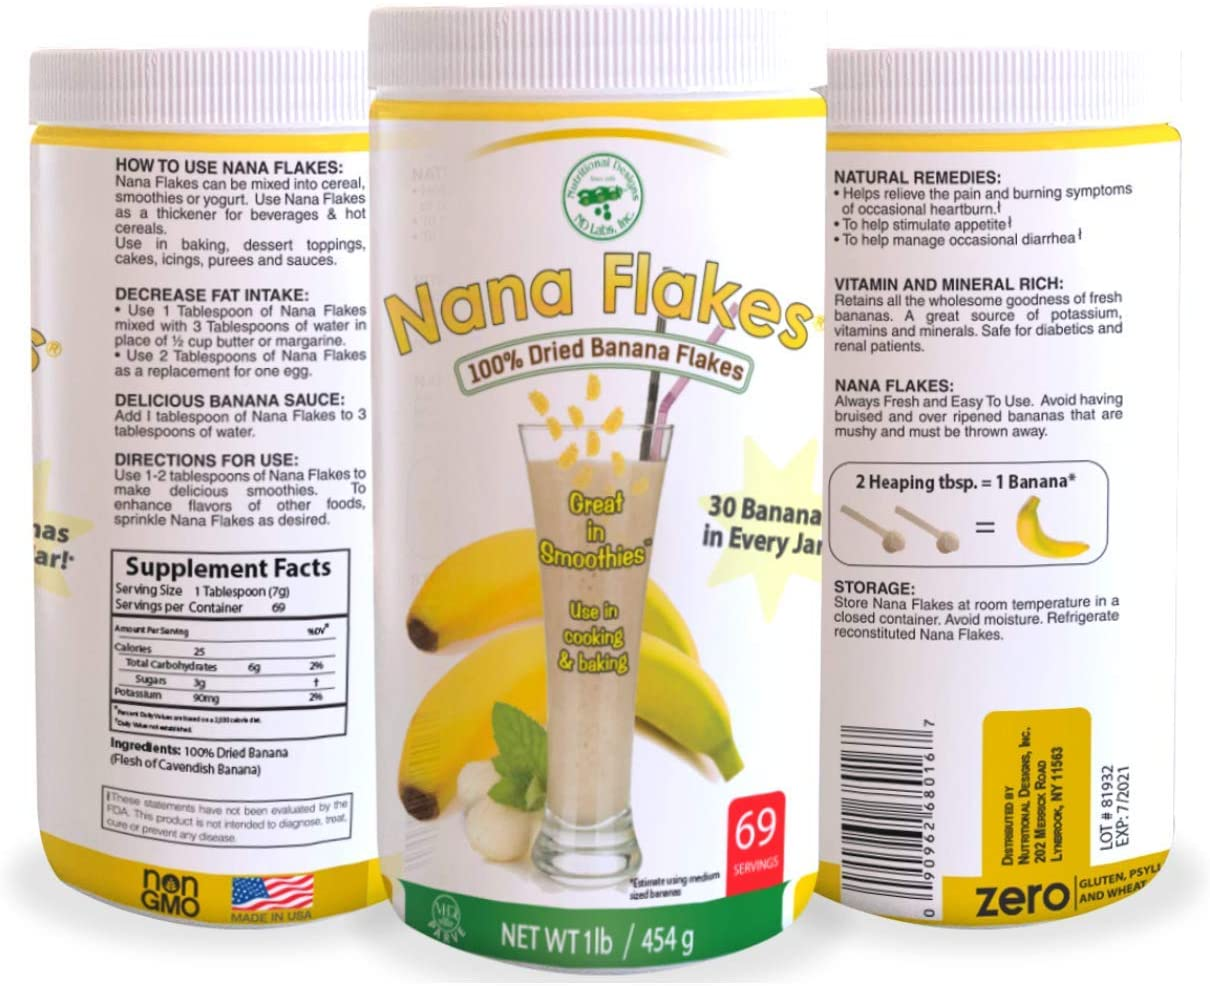 Nana Flakes 100% Pure Banana Flakes Medical Food Powder - Decrease Fat Intake & Natural Remedy for Diarrhea & Heart Burn - Great Source of Protein & Fiber (One Pound Jar)